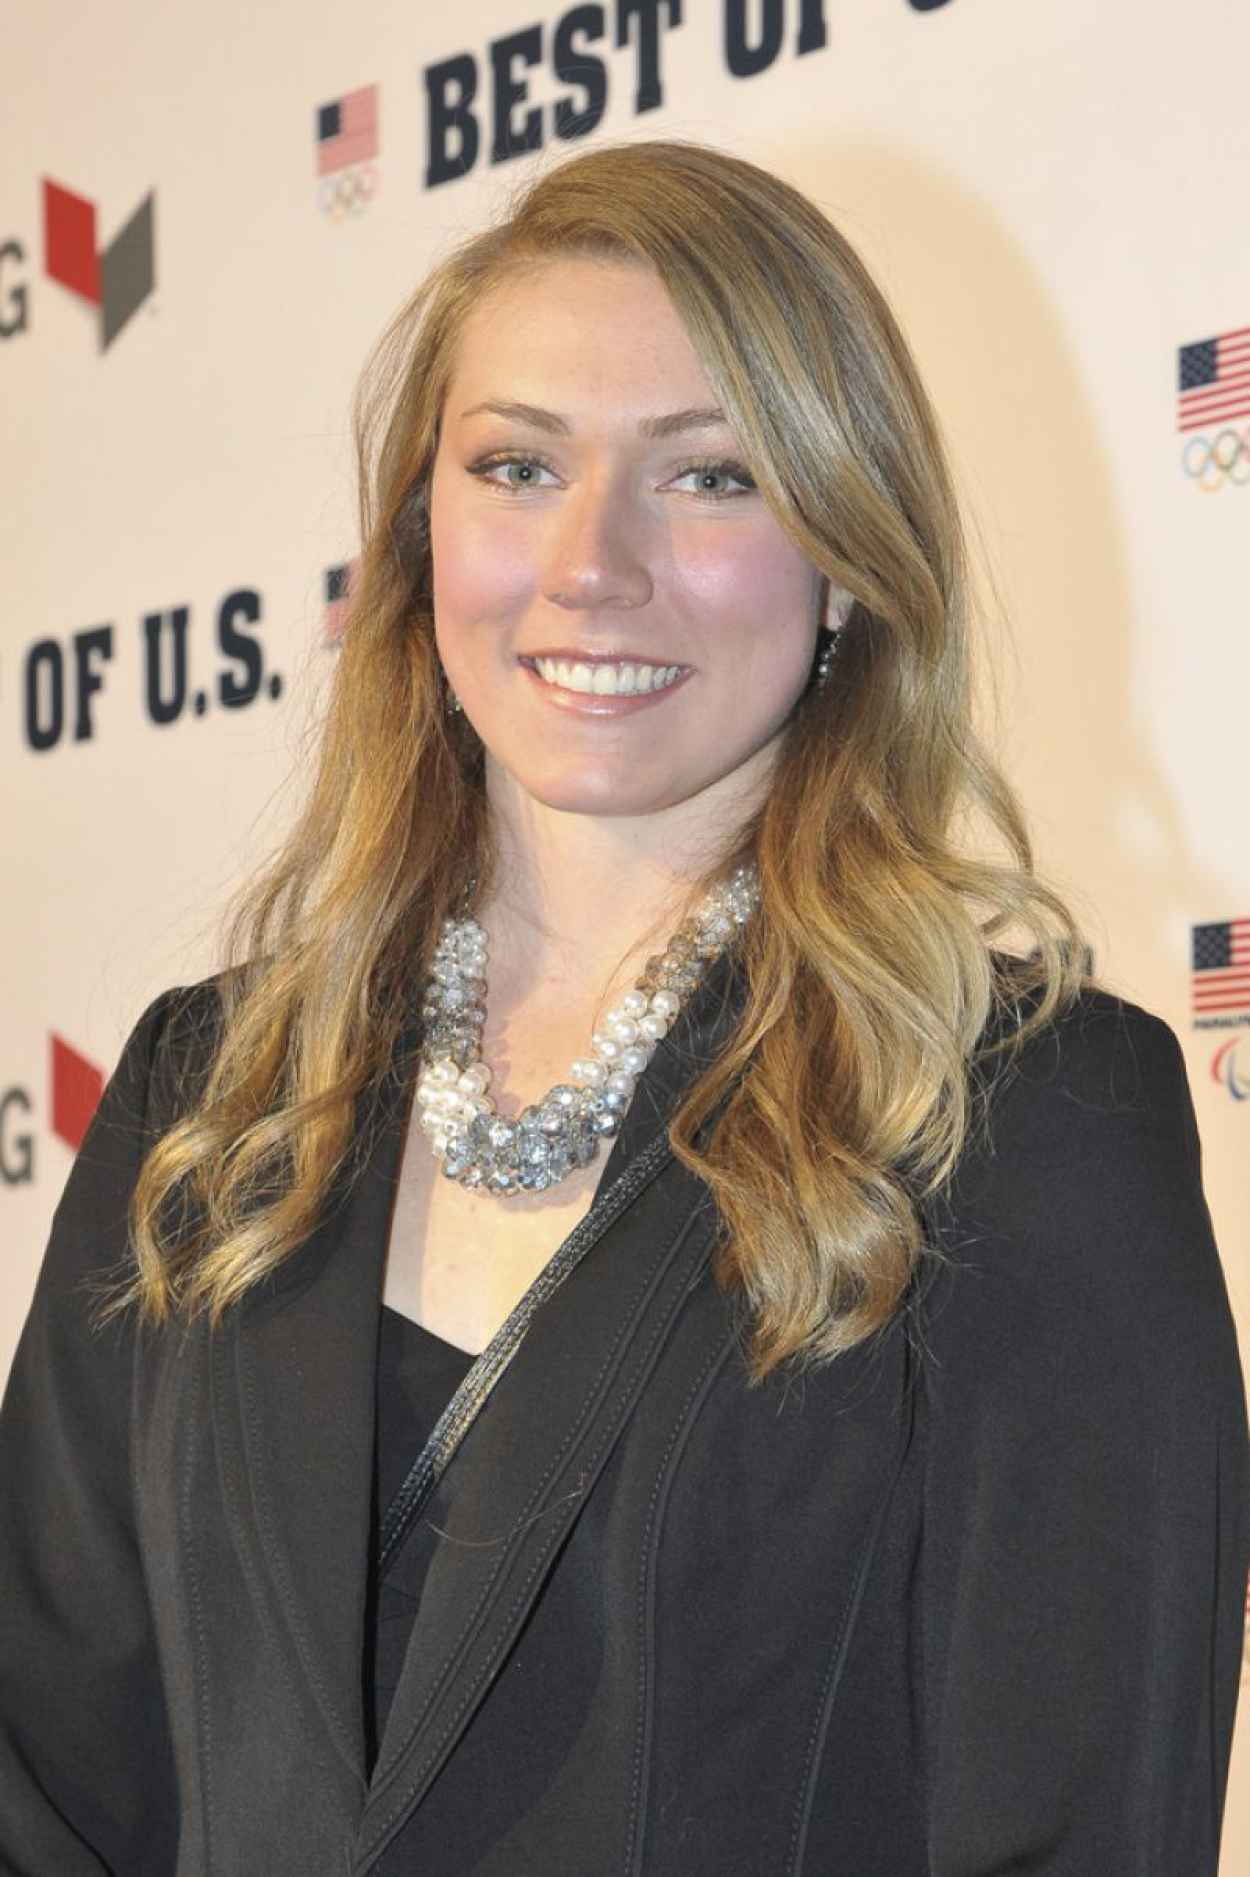 Mikaela Shiffrin - USOCs Best of US Awards 2015 in Washington-1